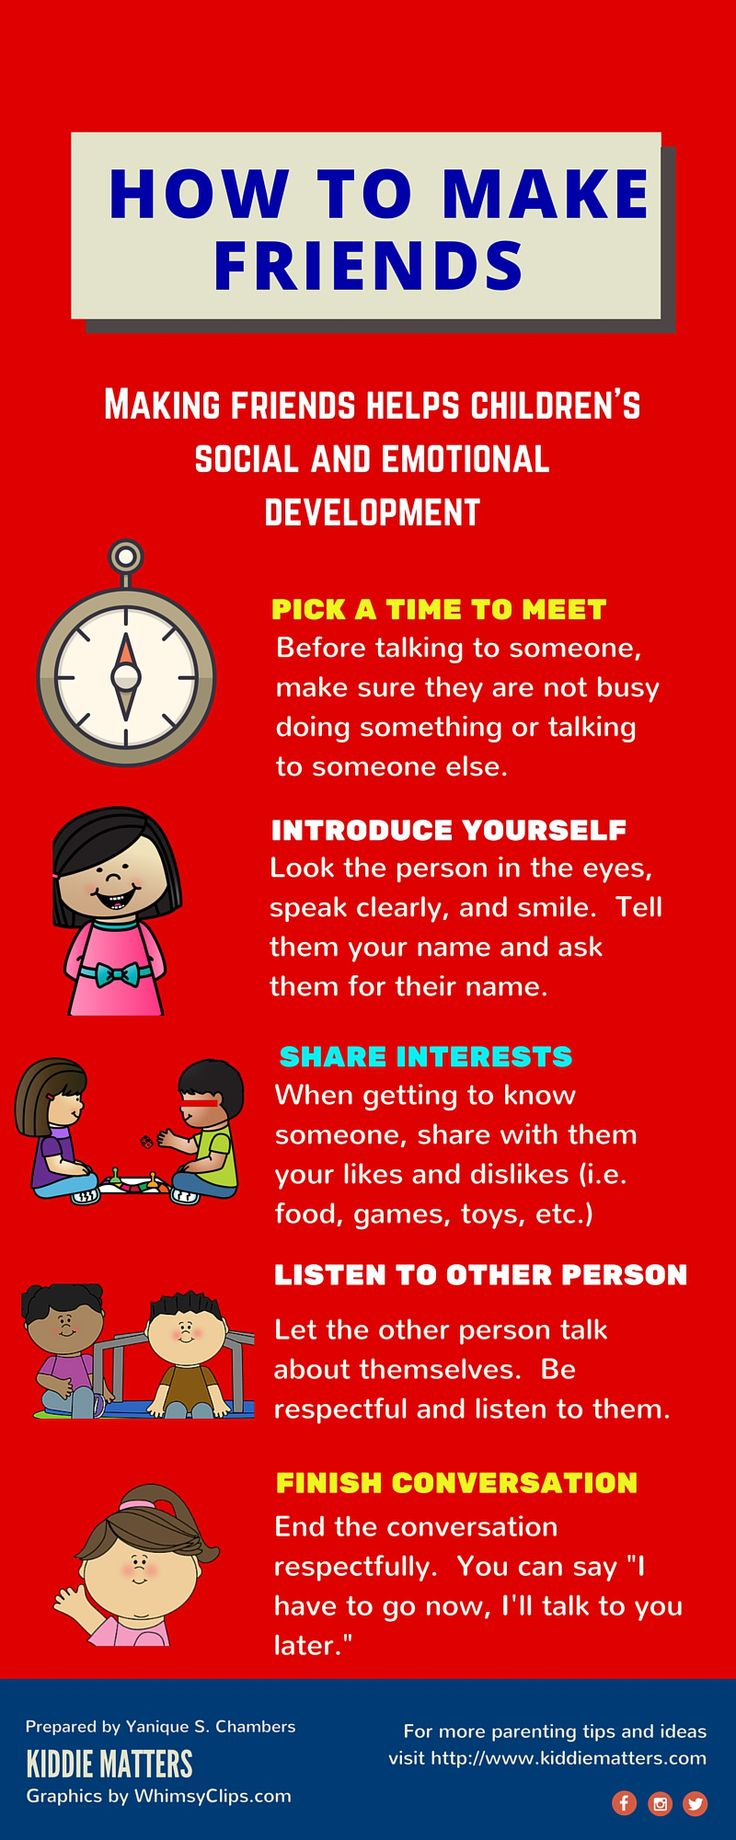 How To Make Friends Infographic Teach kids the important social skill of making friends. Parents, teachers, and counselors can role play this infographic with children to help them practice how to behave in social situations where they are meeting new people.